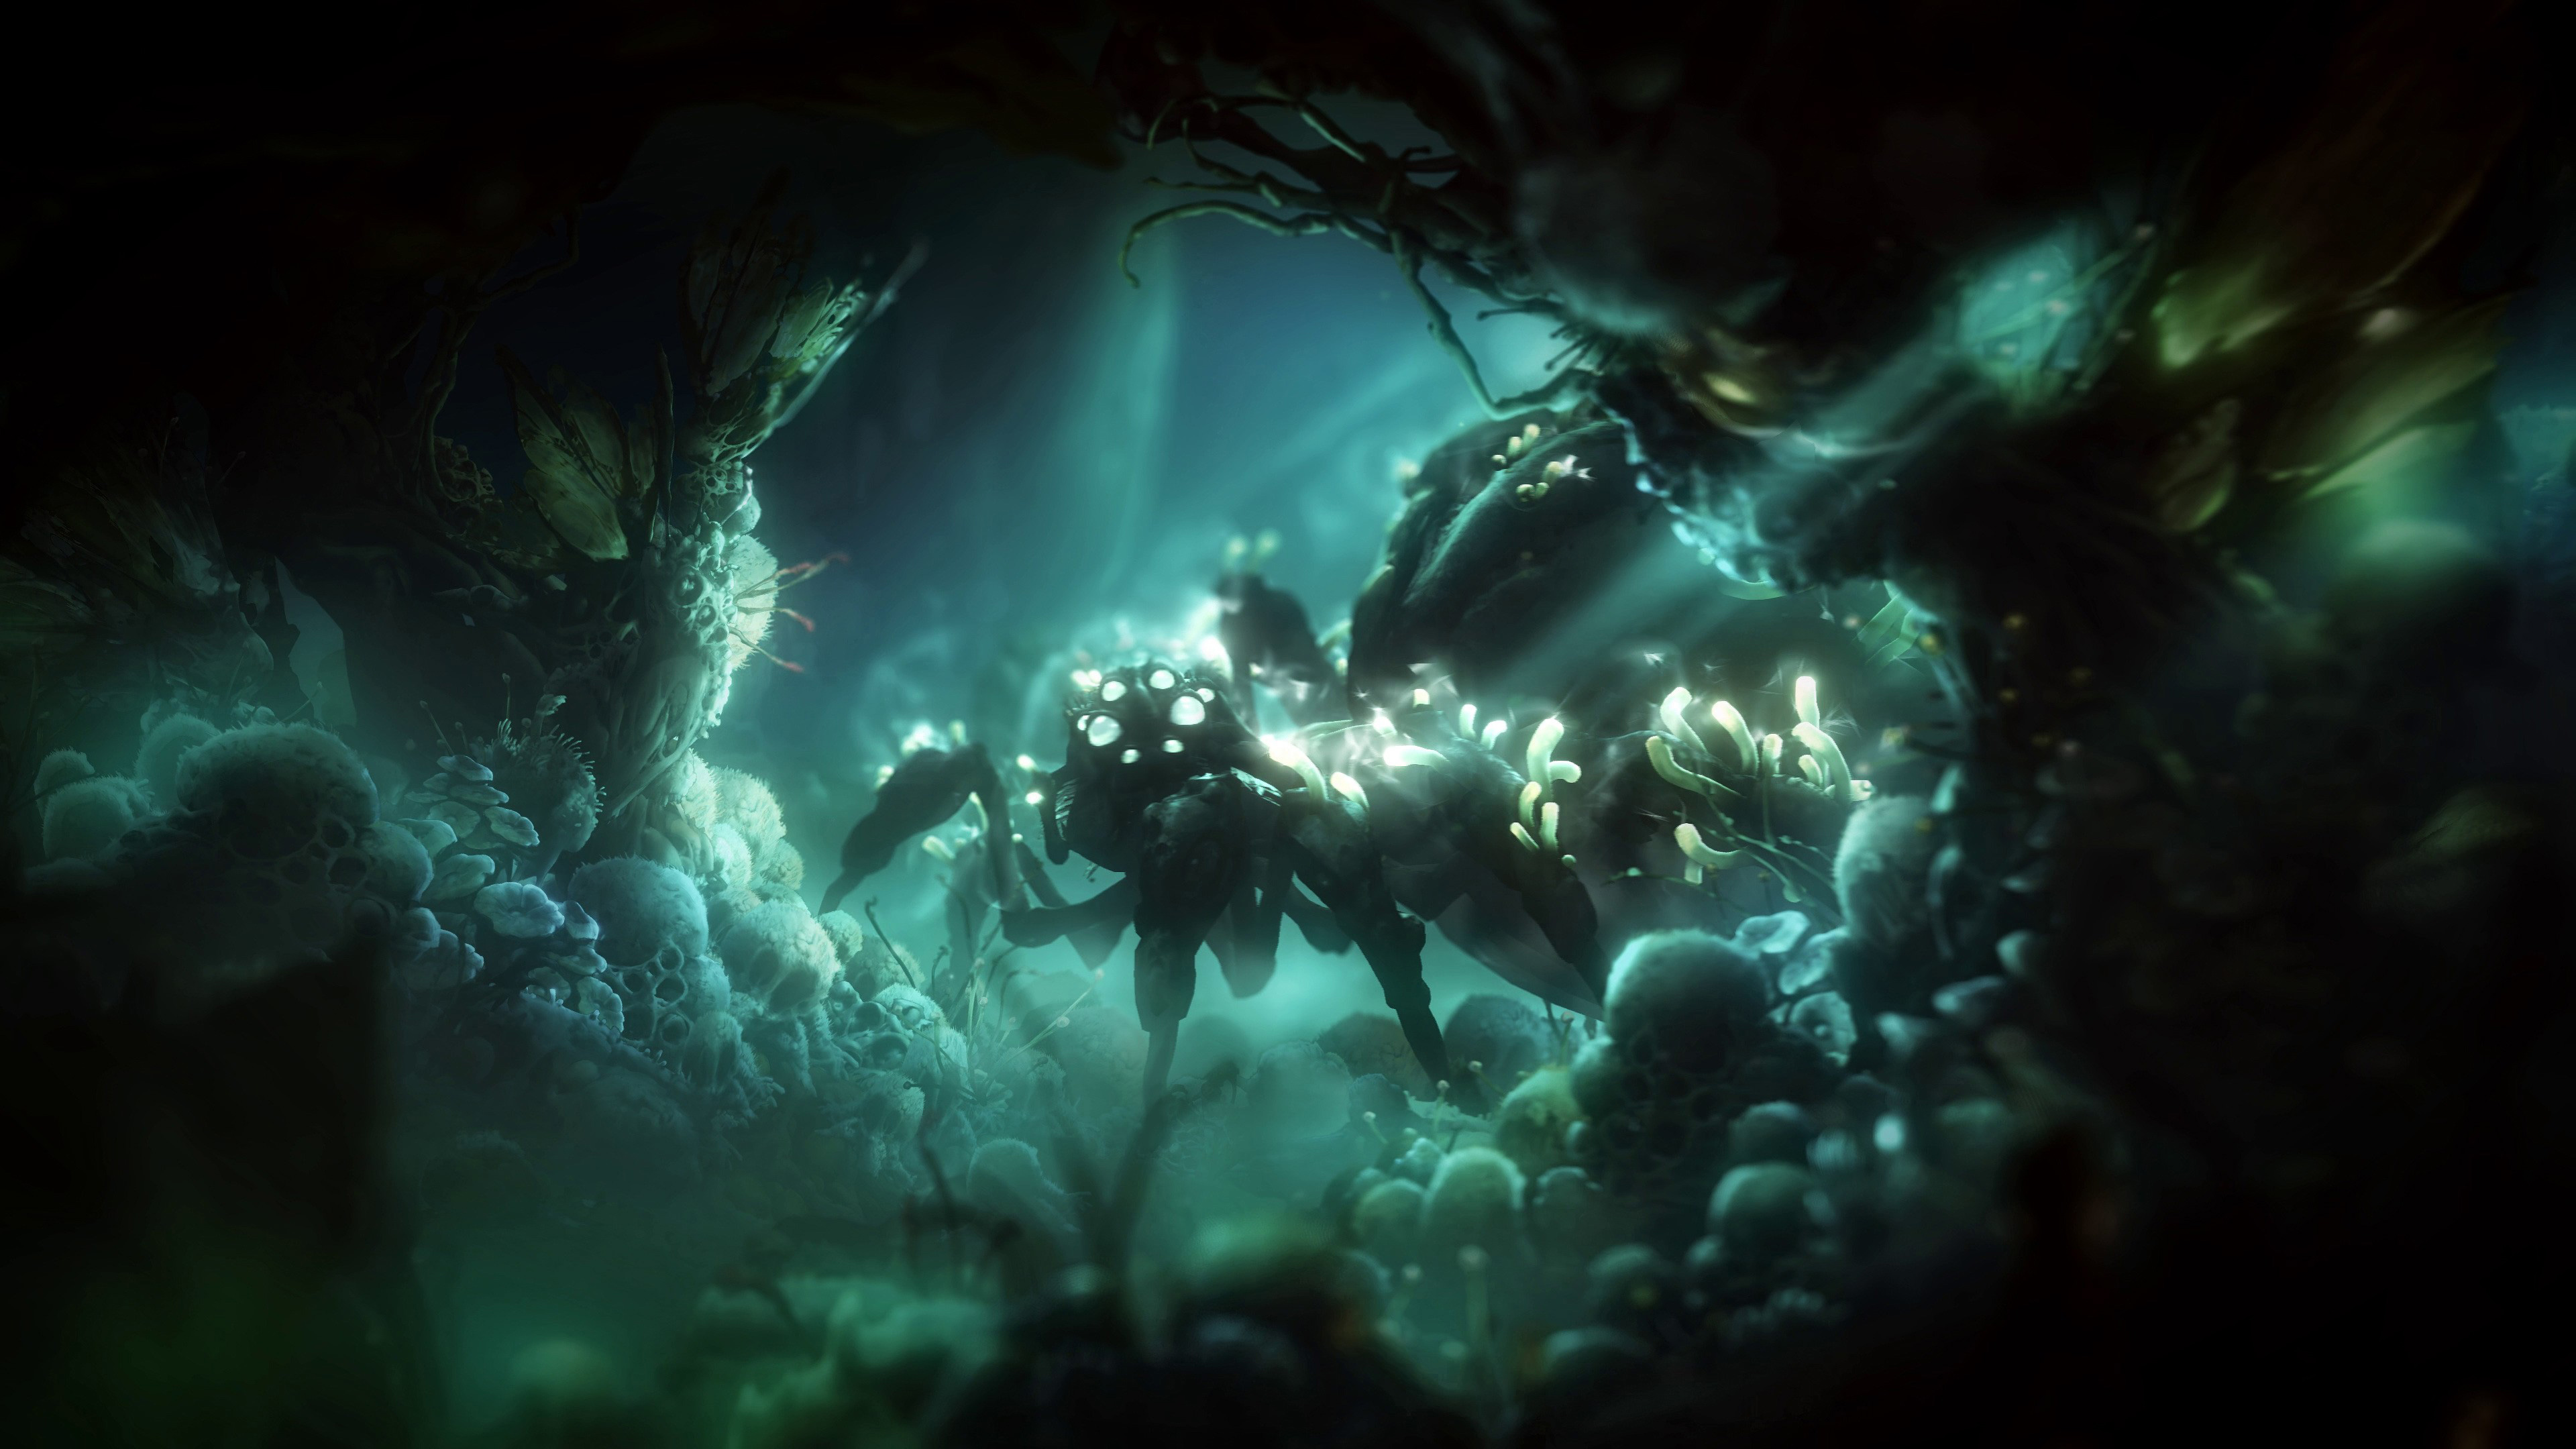 Ori And The Will Of The Wisps Wallpapers In Ultra Hd 4k Gameranx